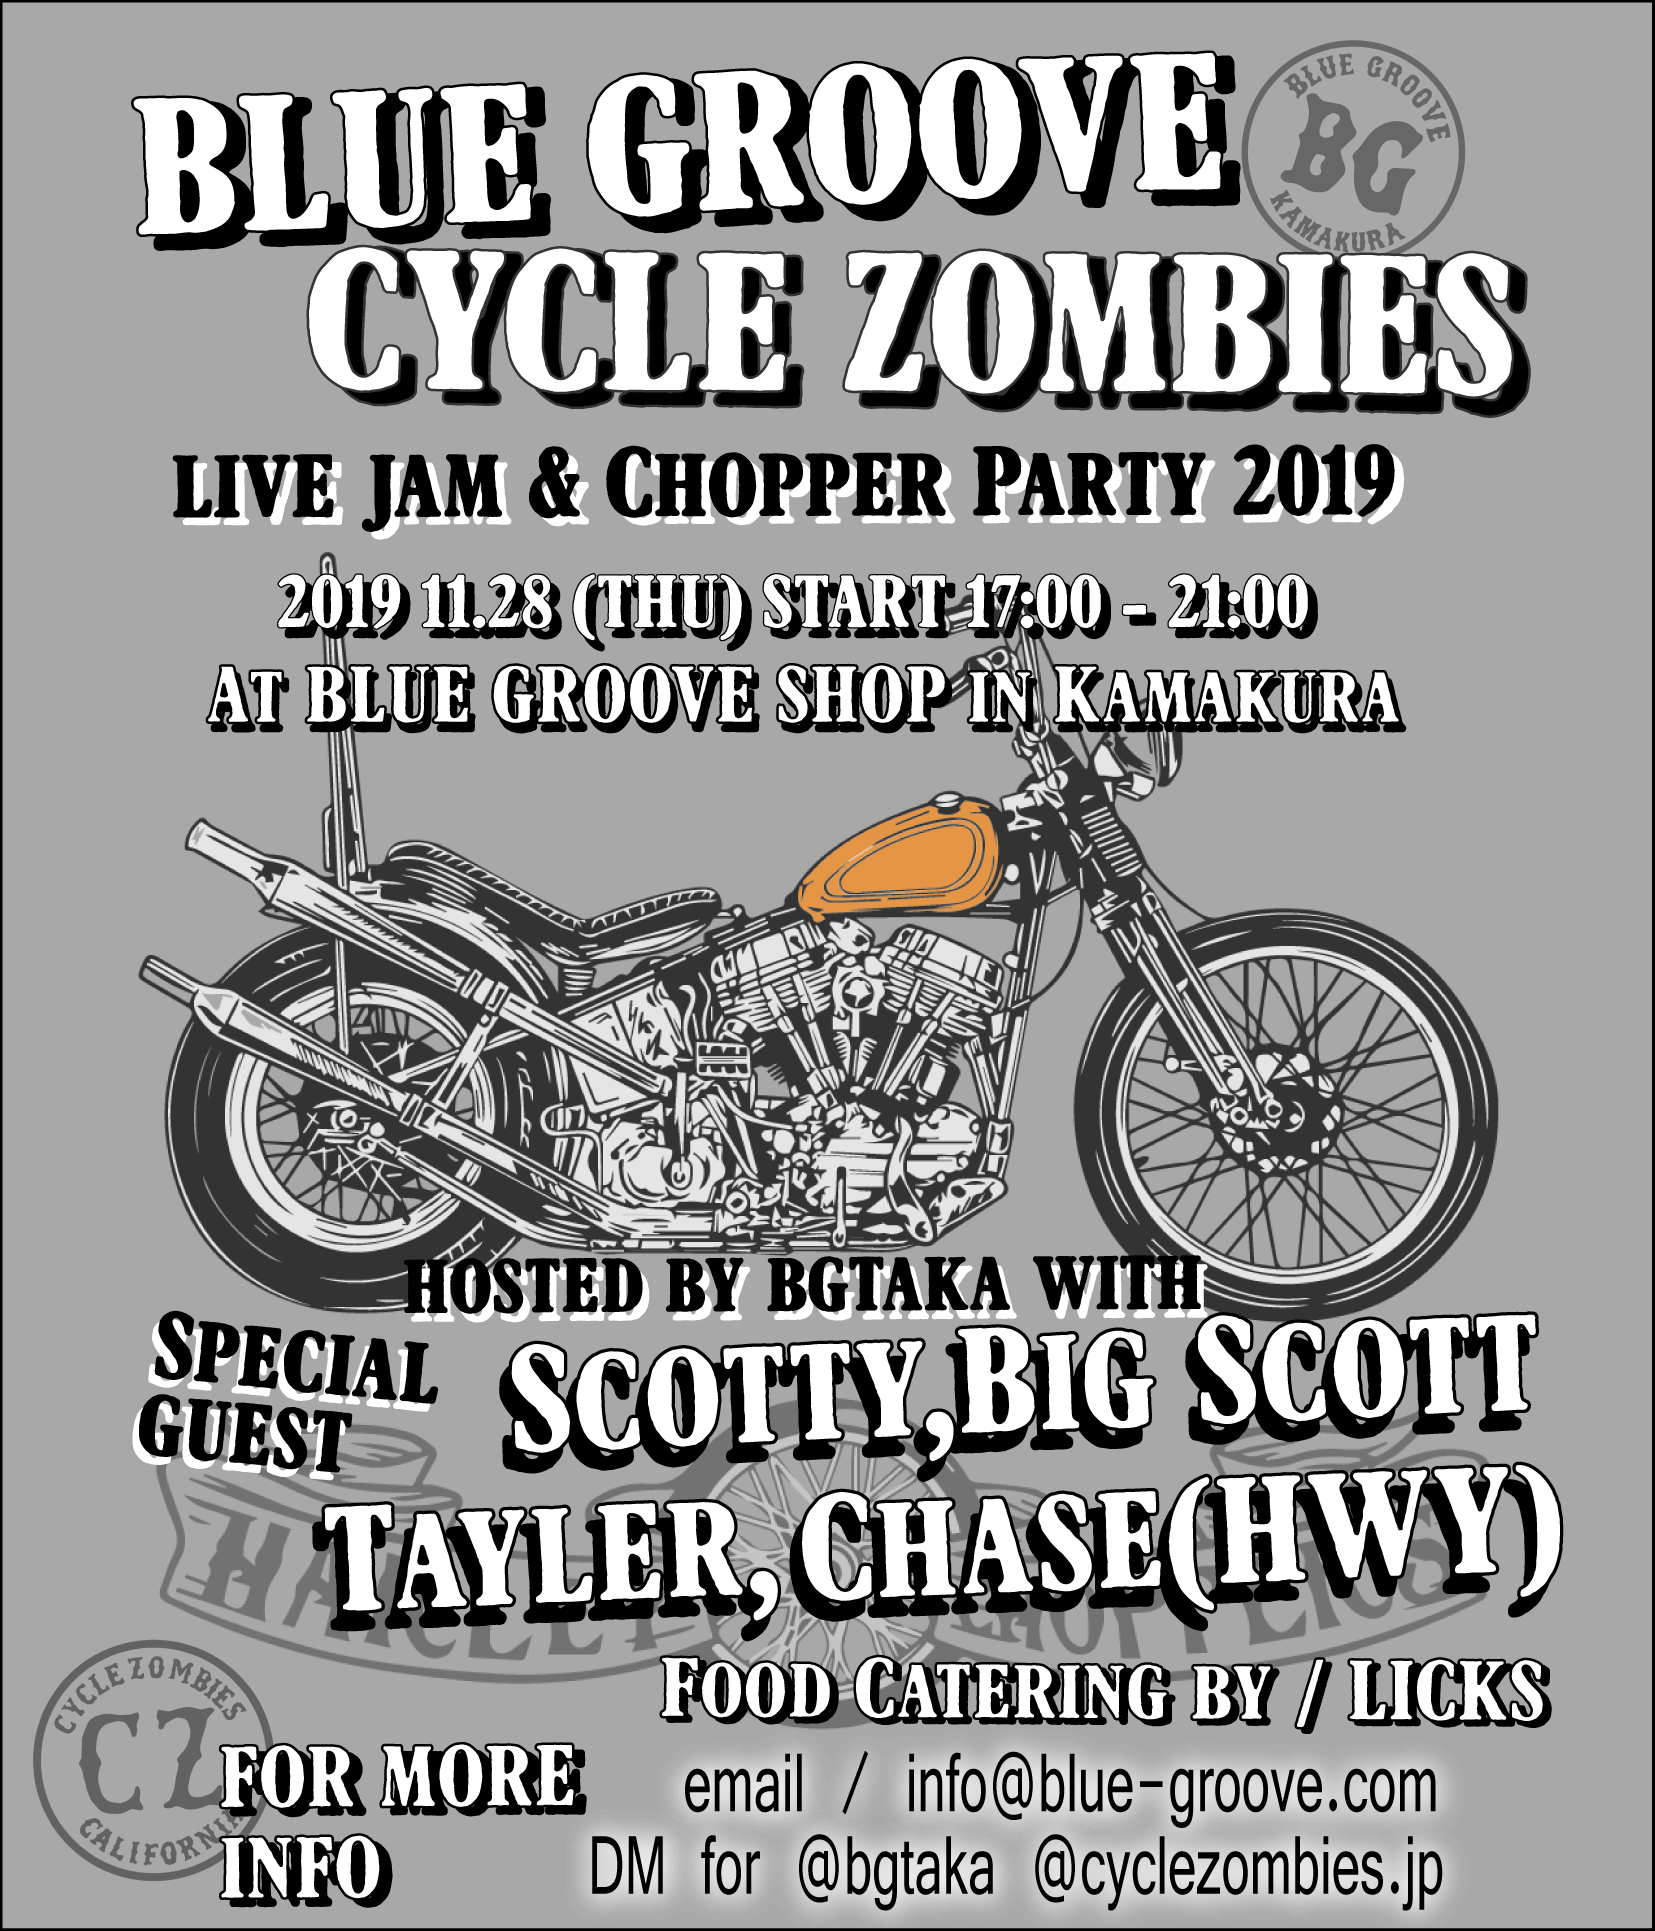 BLUE GROOVE x CYCLE ZOMBIES 2019 Collaboration Launch Party